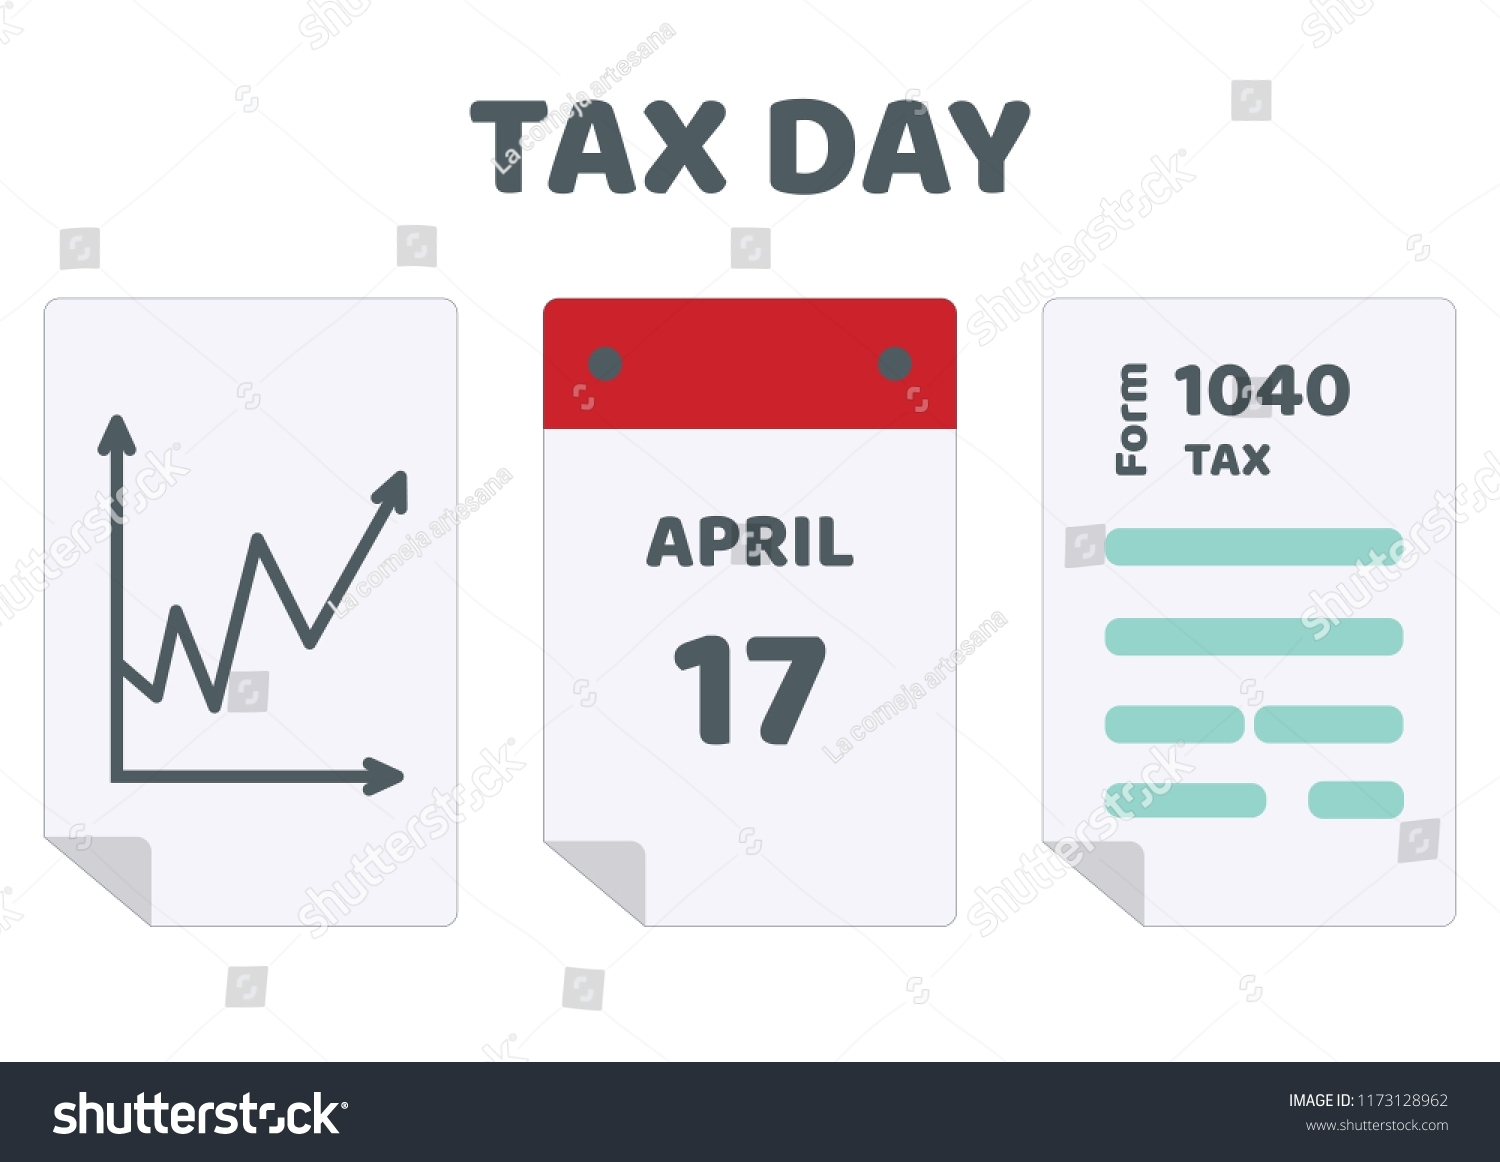 2019 2020 Tax Day Reminder Calendar Stock Vector (Royalty Free with regard to 2019-2020Tax Calendar Month And Week